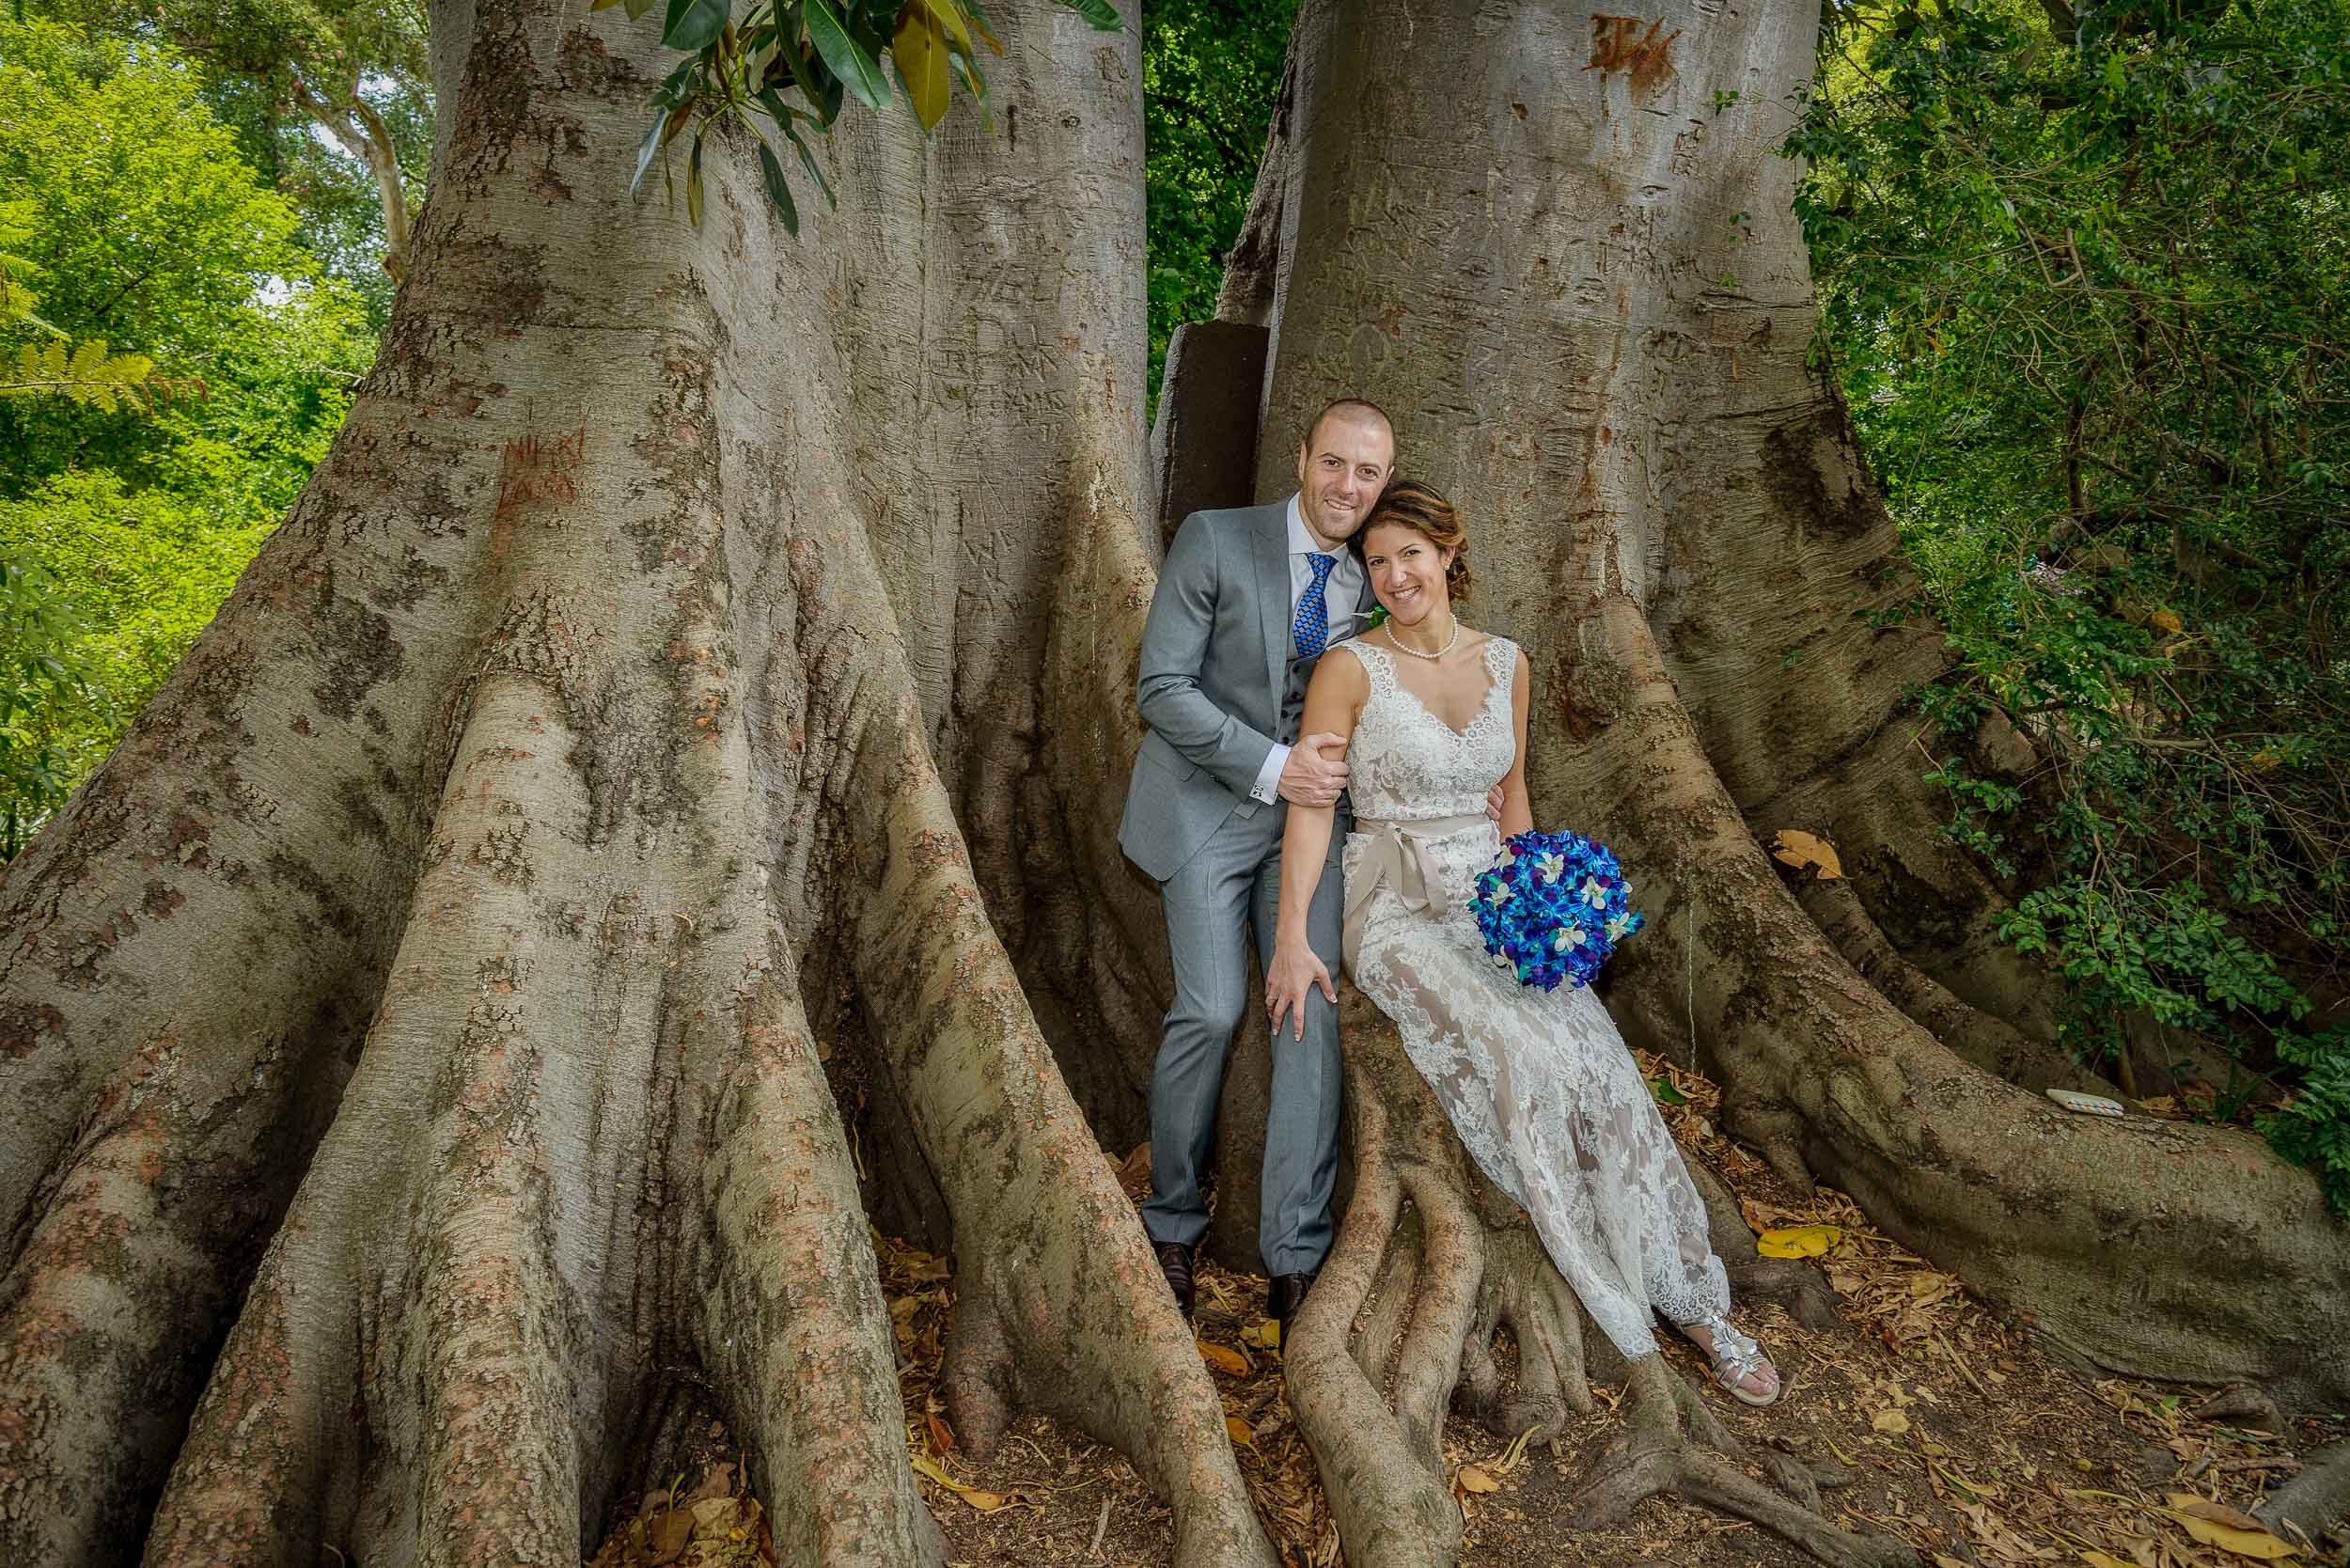 Bride and groom    relaxing on the trunk of a huge tree in the    Melbourne Botanical Gardens   .